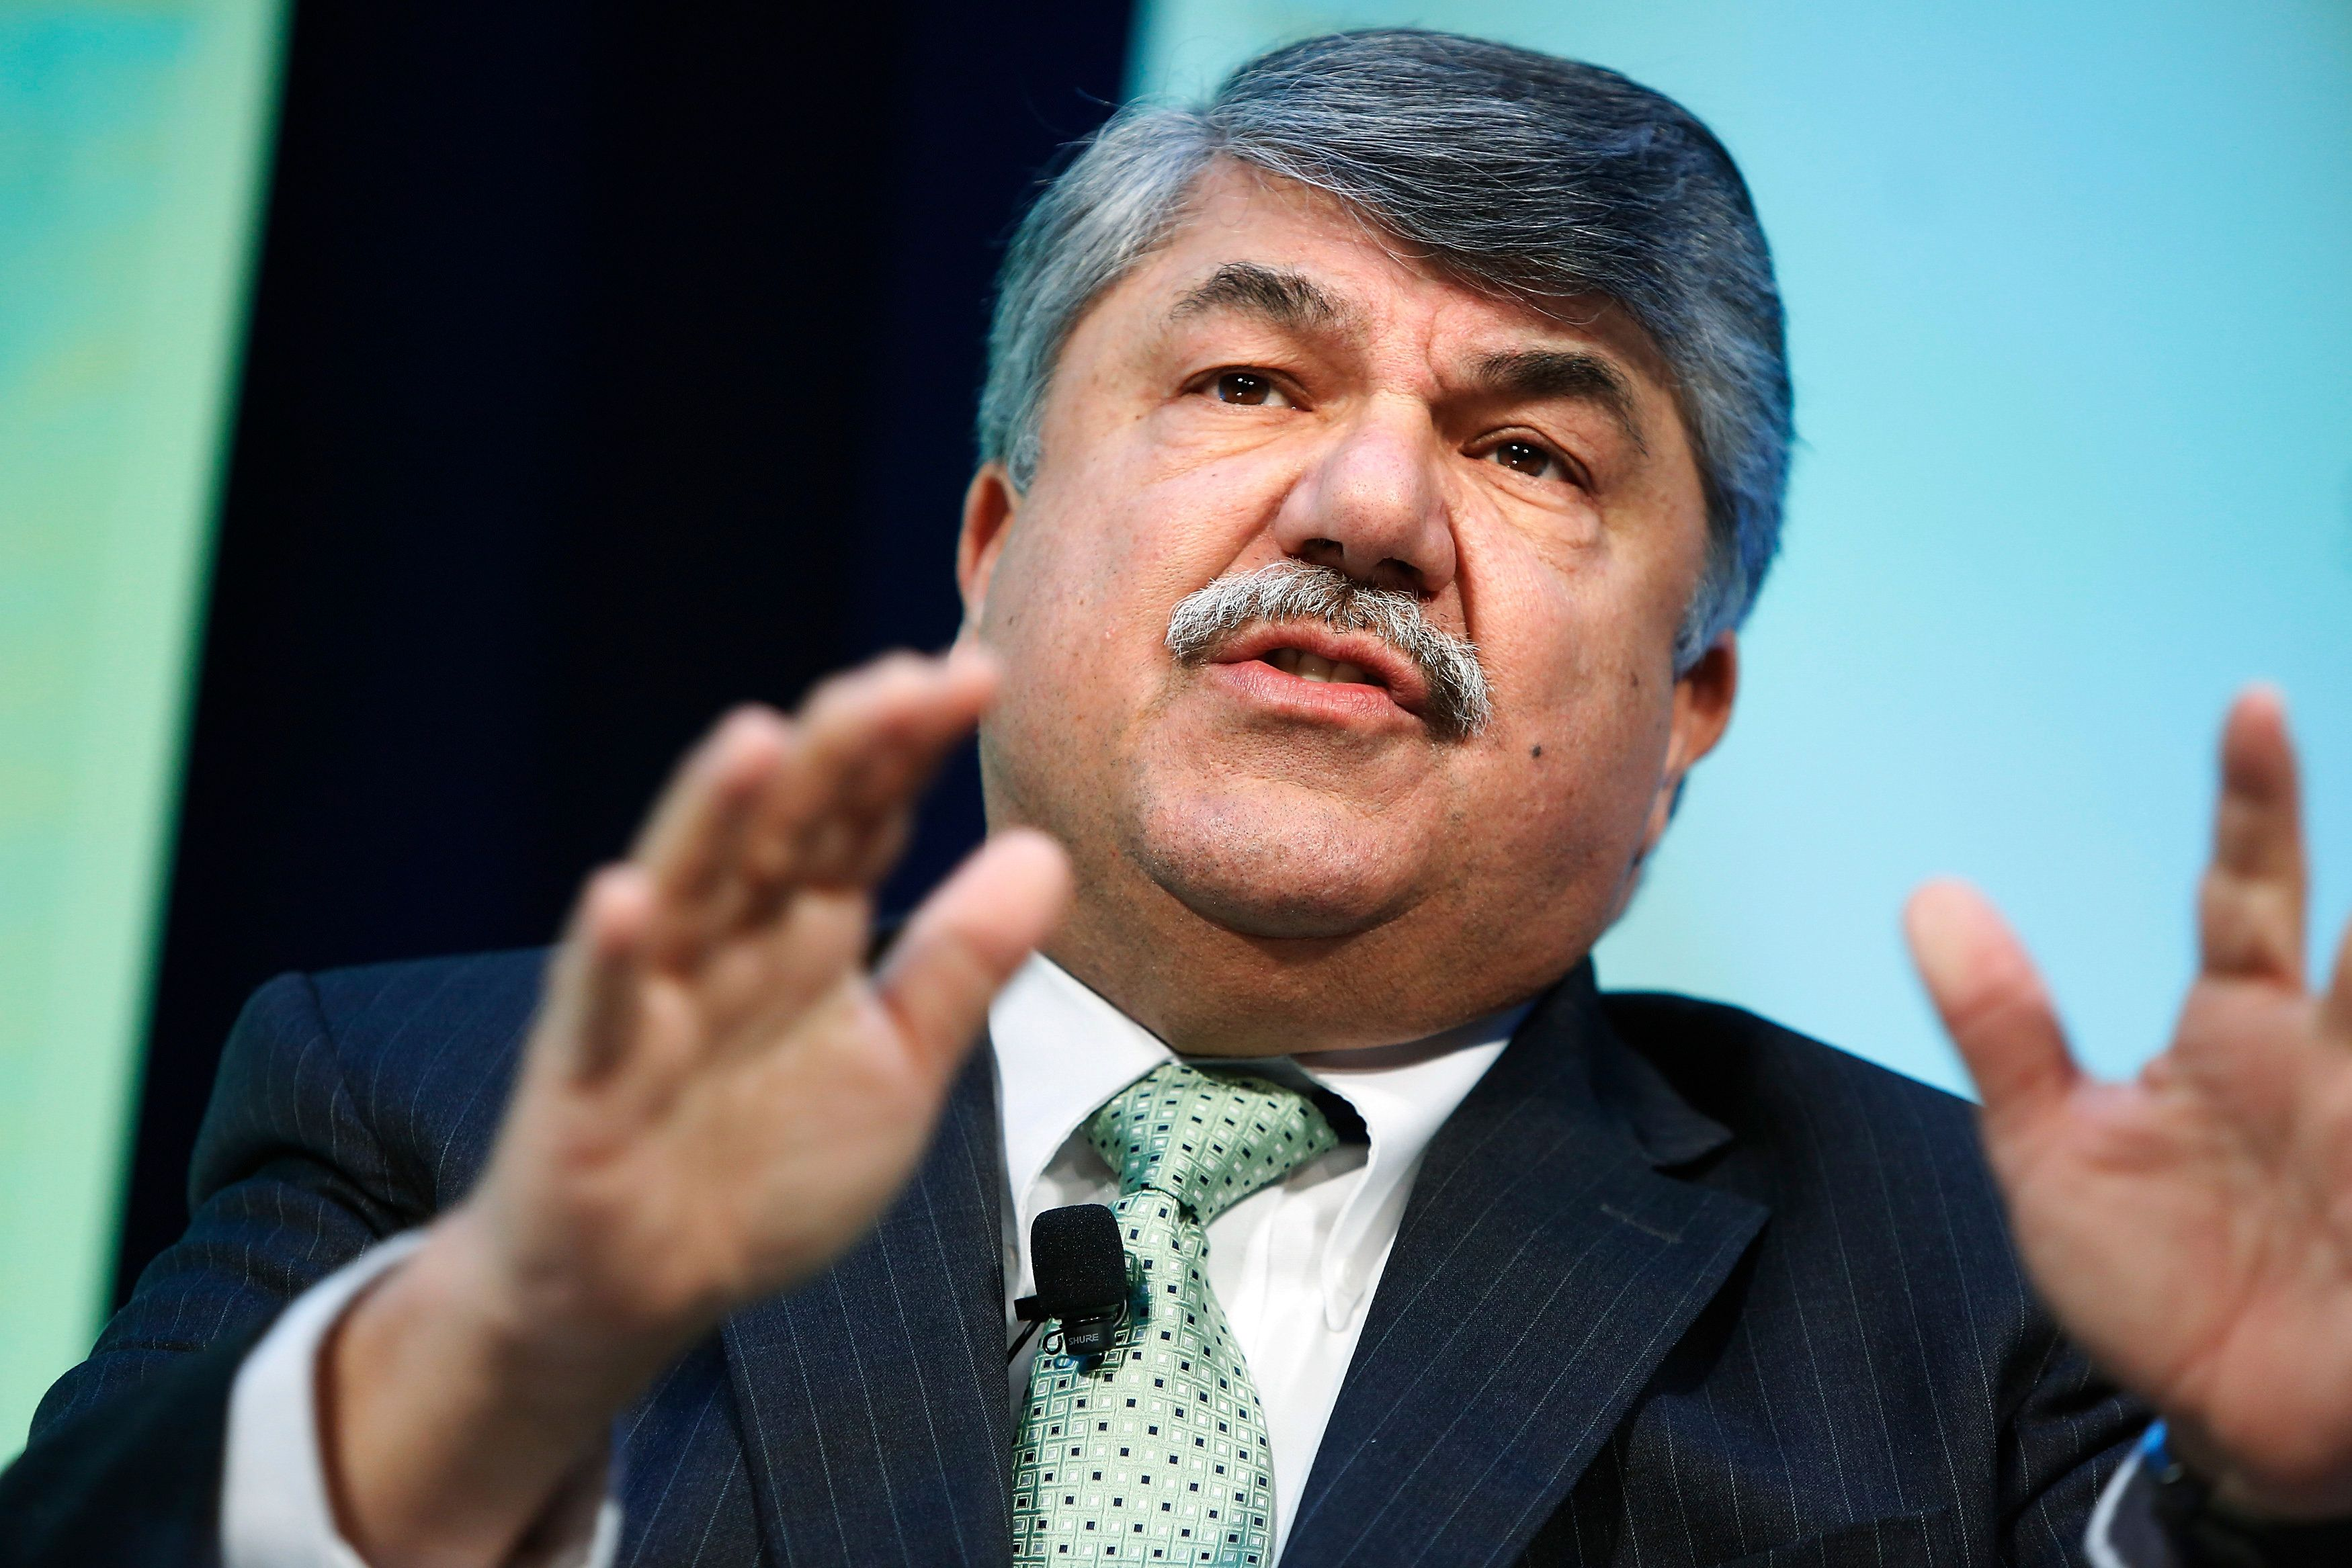 AFL-CIO President Richard Trumka takes part in an onstage interview during The Atlantic Economy Summit in Washington March 18, 2014.   REUTERS/Jonathan Ernst    (UNITED STATES - Tags: POLITICS BUSINESS)